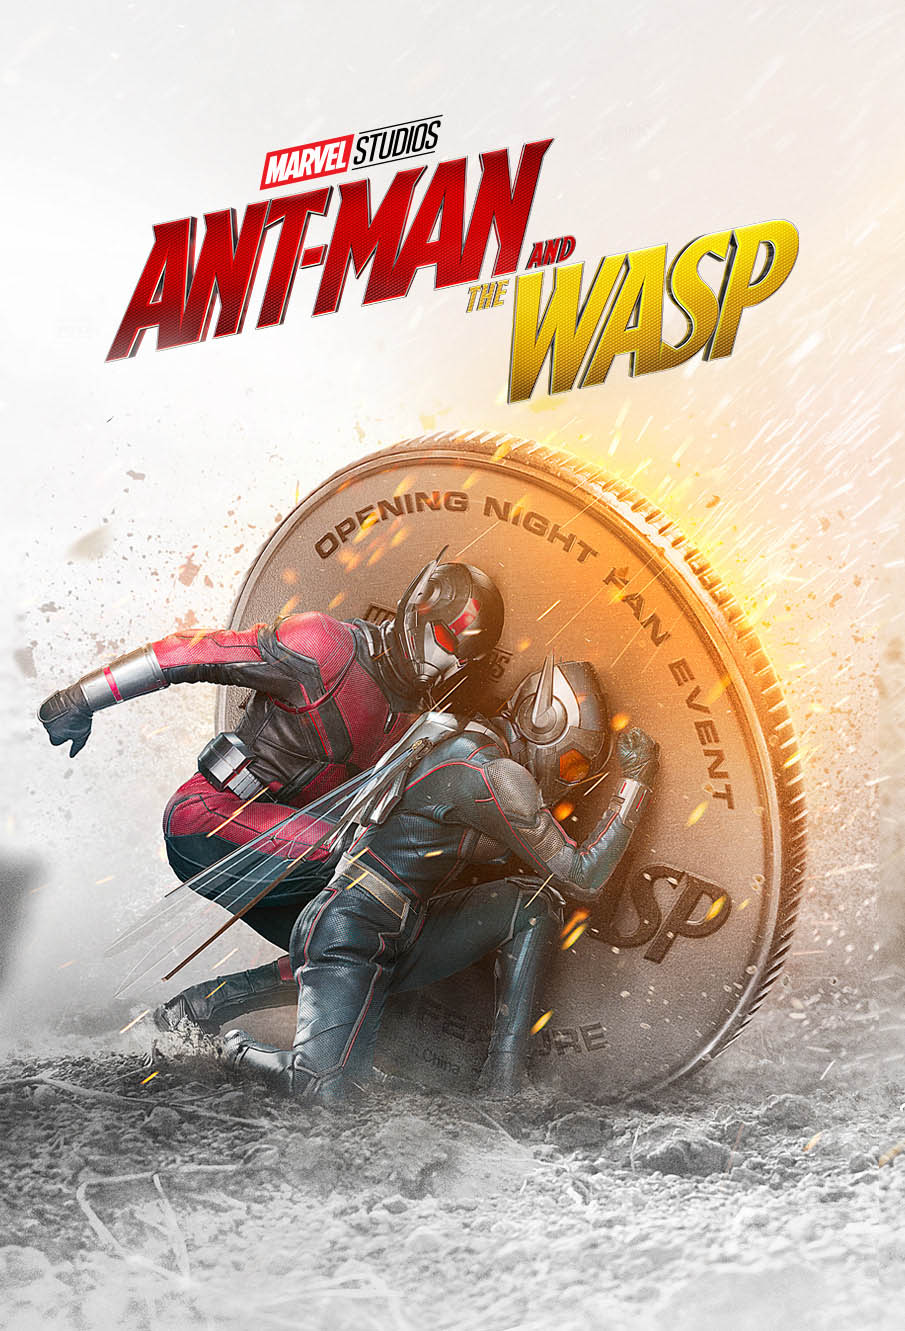 movie poster designs ideas ant man wasp